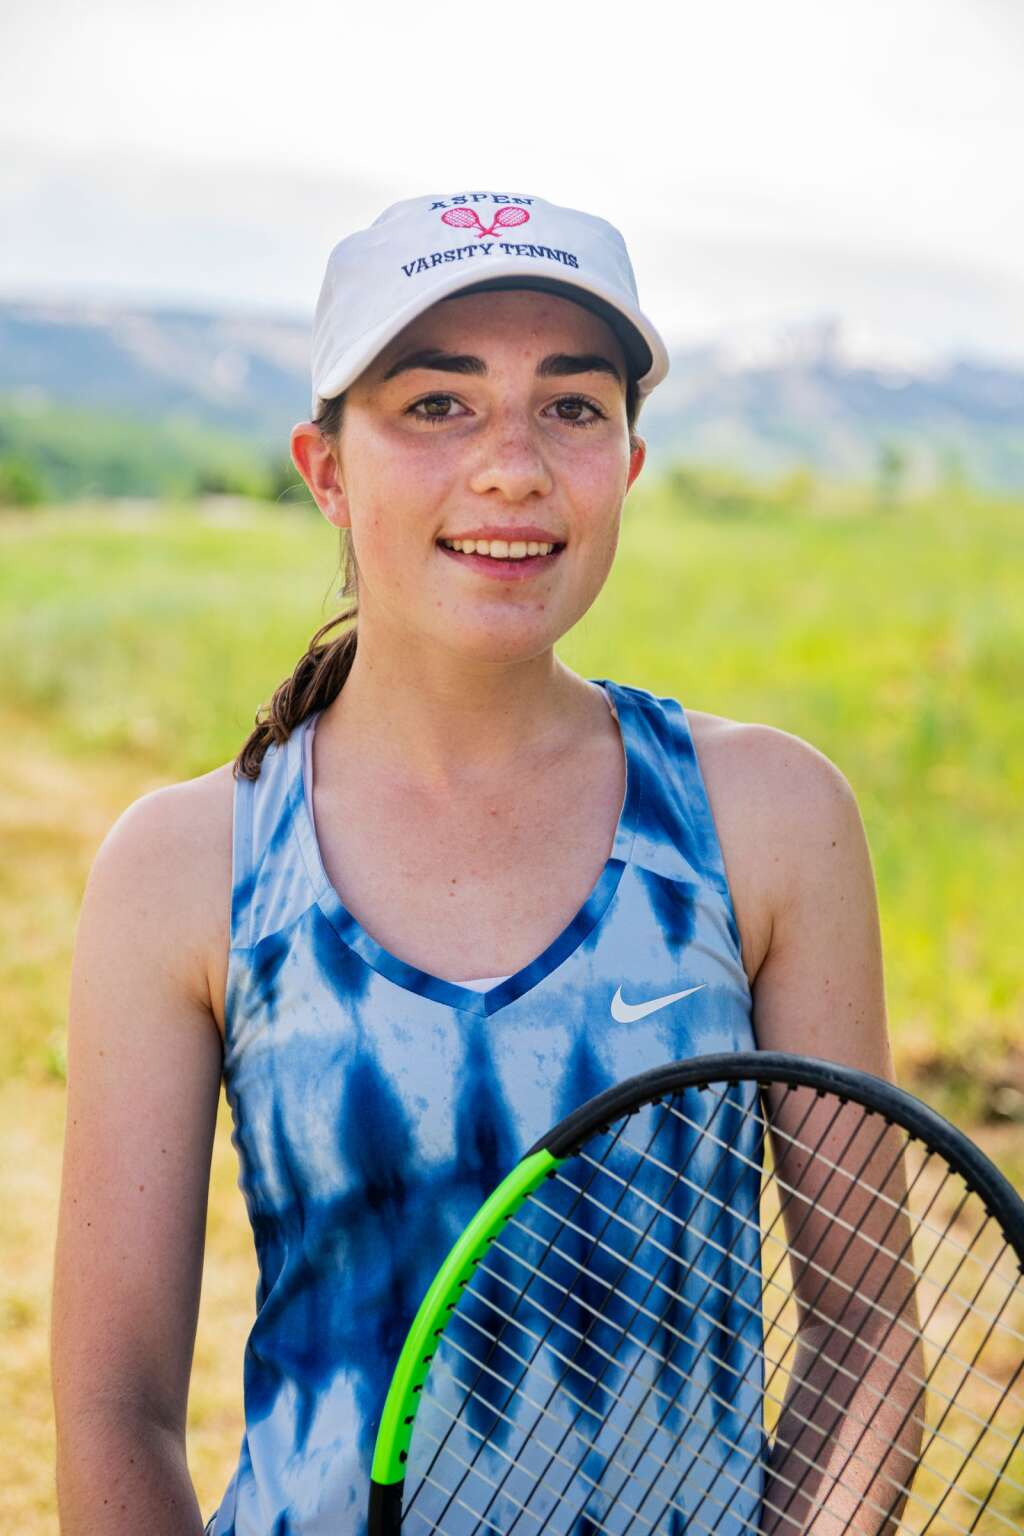 Aspen High School varsity tennis singles player Macy Hopkinson before practice at Snowmass Club on Wednesday, June 9, 2021. Hopkinson recently graduated and will be attending Notre Dame in the fall. (Kelsey Brunner/The Aspen Times)